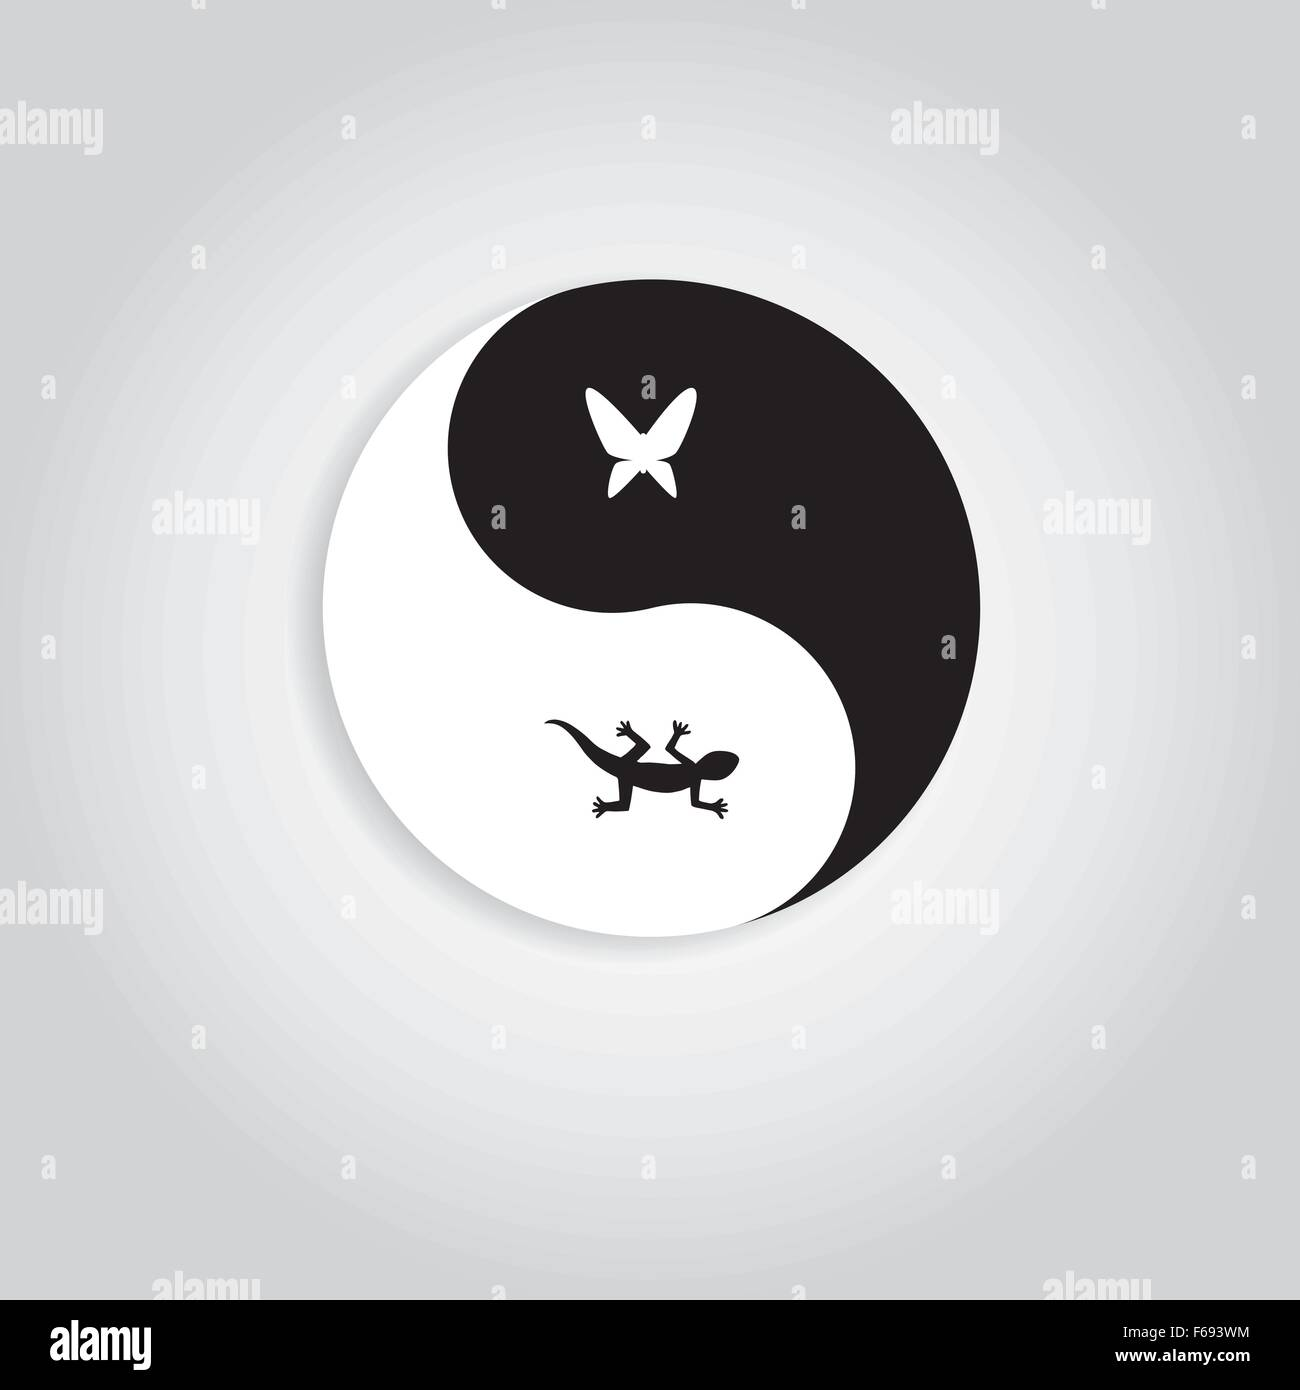 Hunter and prey yinyang logo showing gecko and butterfly in hunter and prey yinyang logo showing gecko and butterfly in yinyang symbol represent to nature life cycle biocorpaavc Image collections